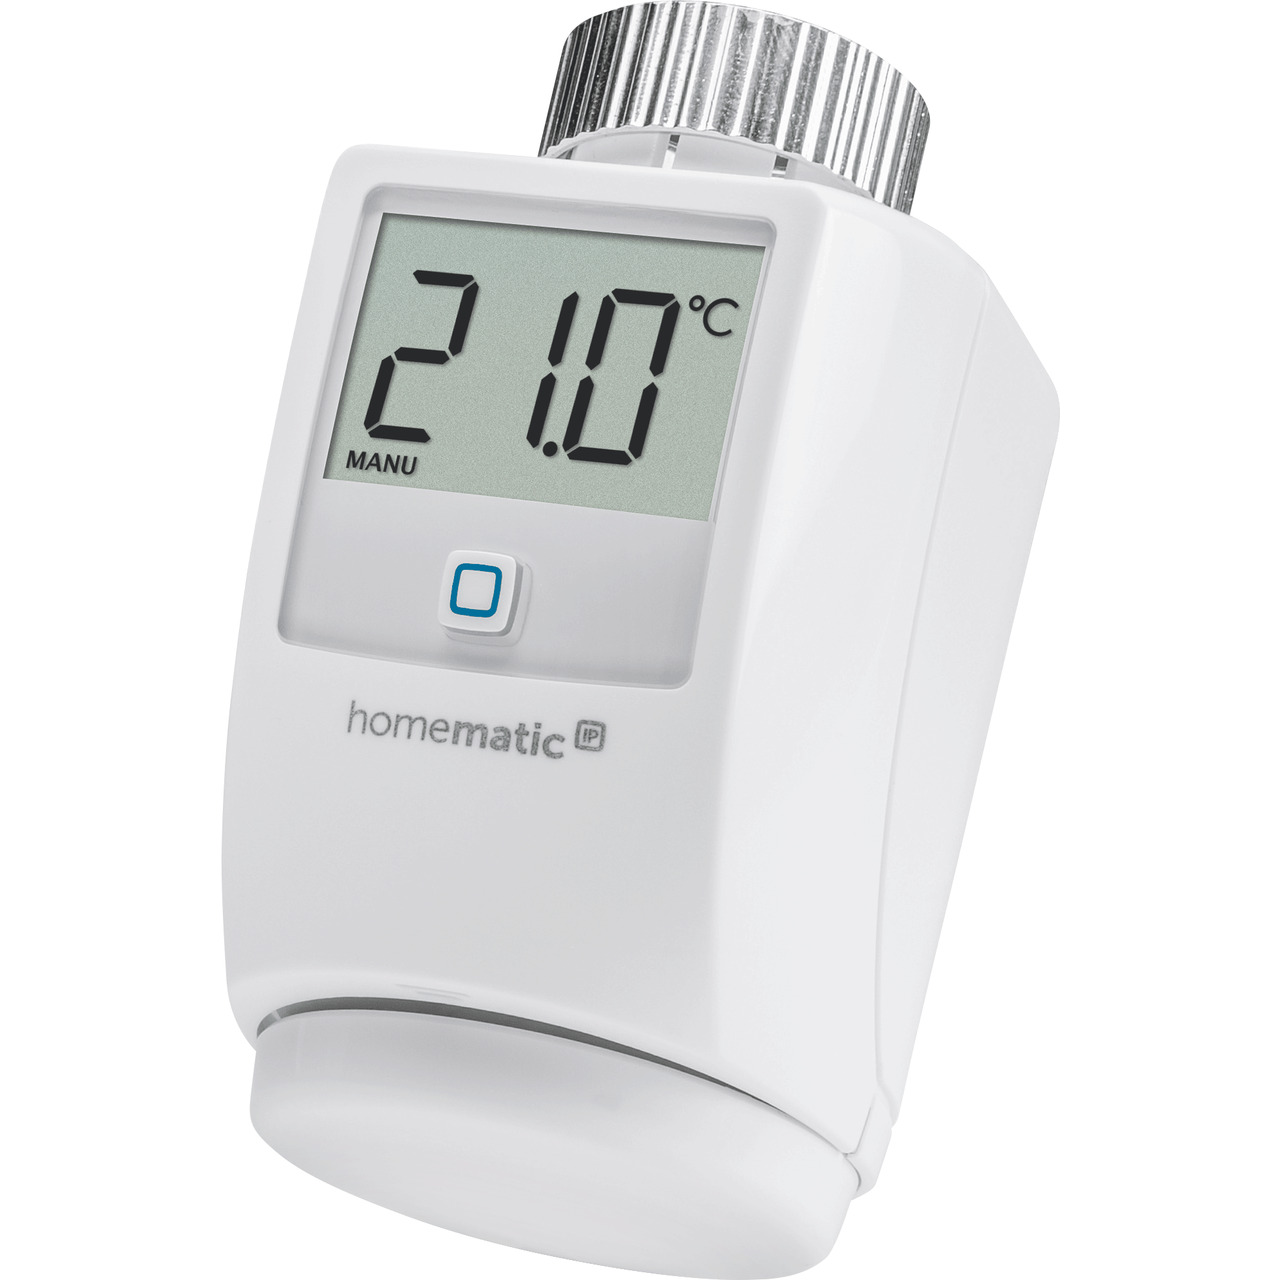 ELV Homematic IP Bausatz Heizkörperthermostat HmIP-eTRV-2- für Smart Home - Hausautomation